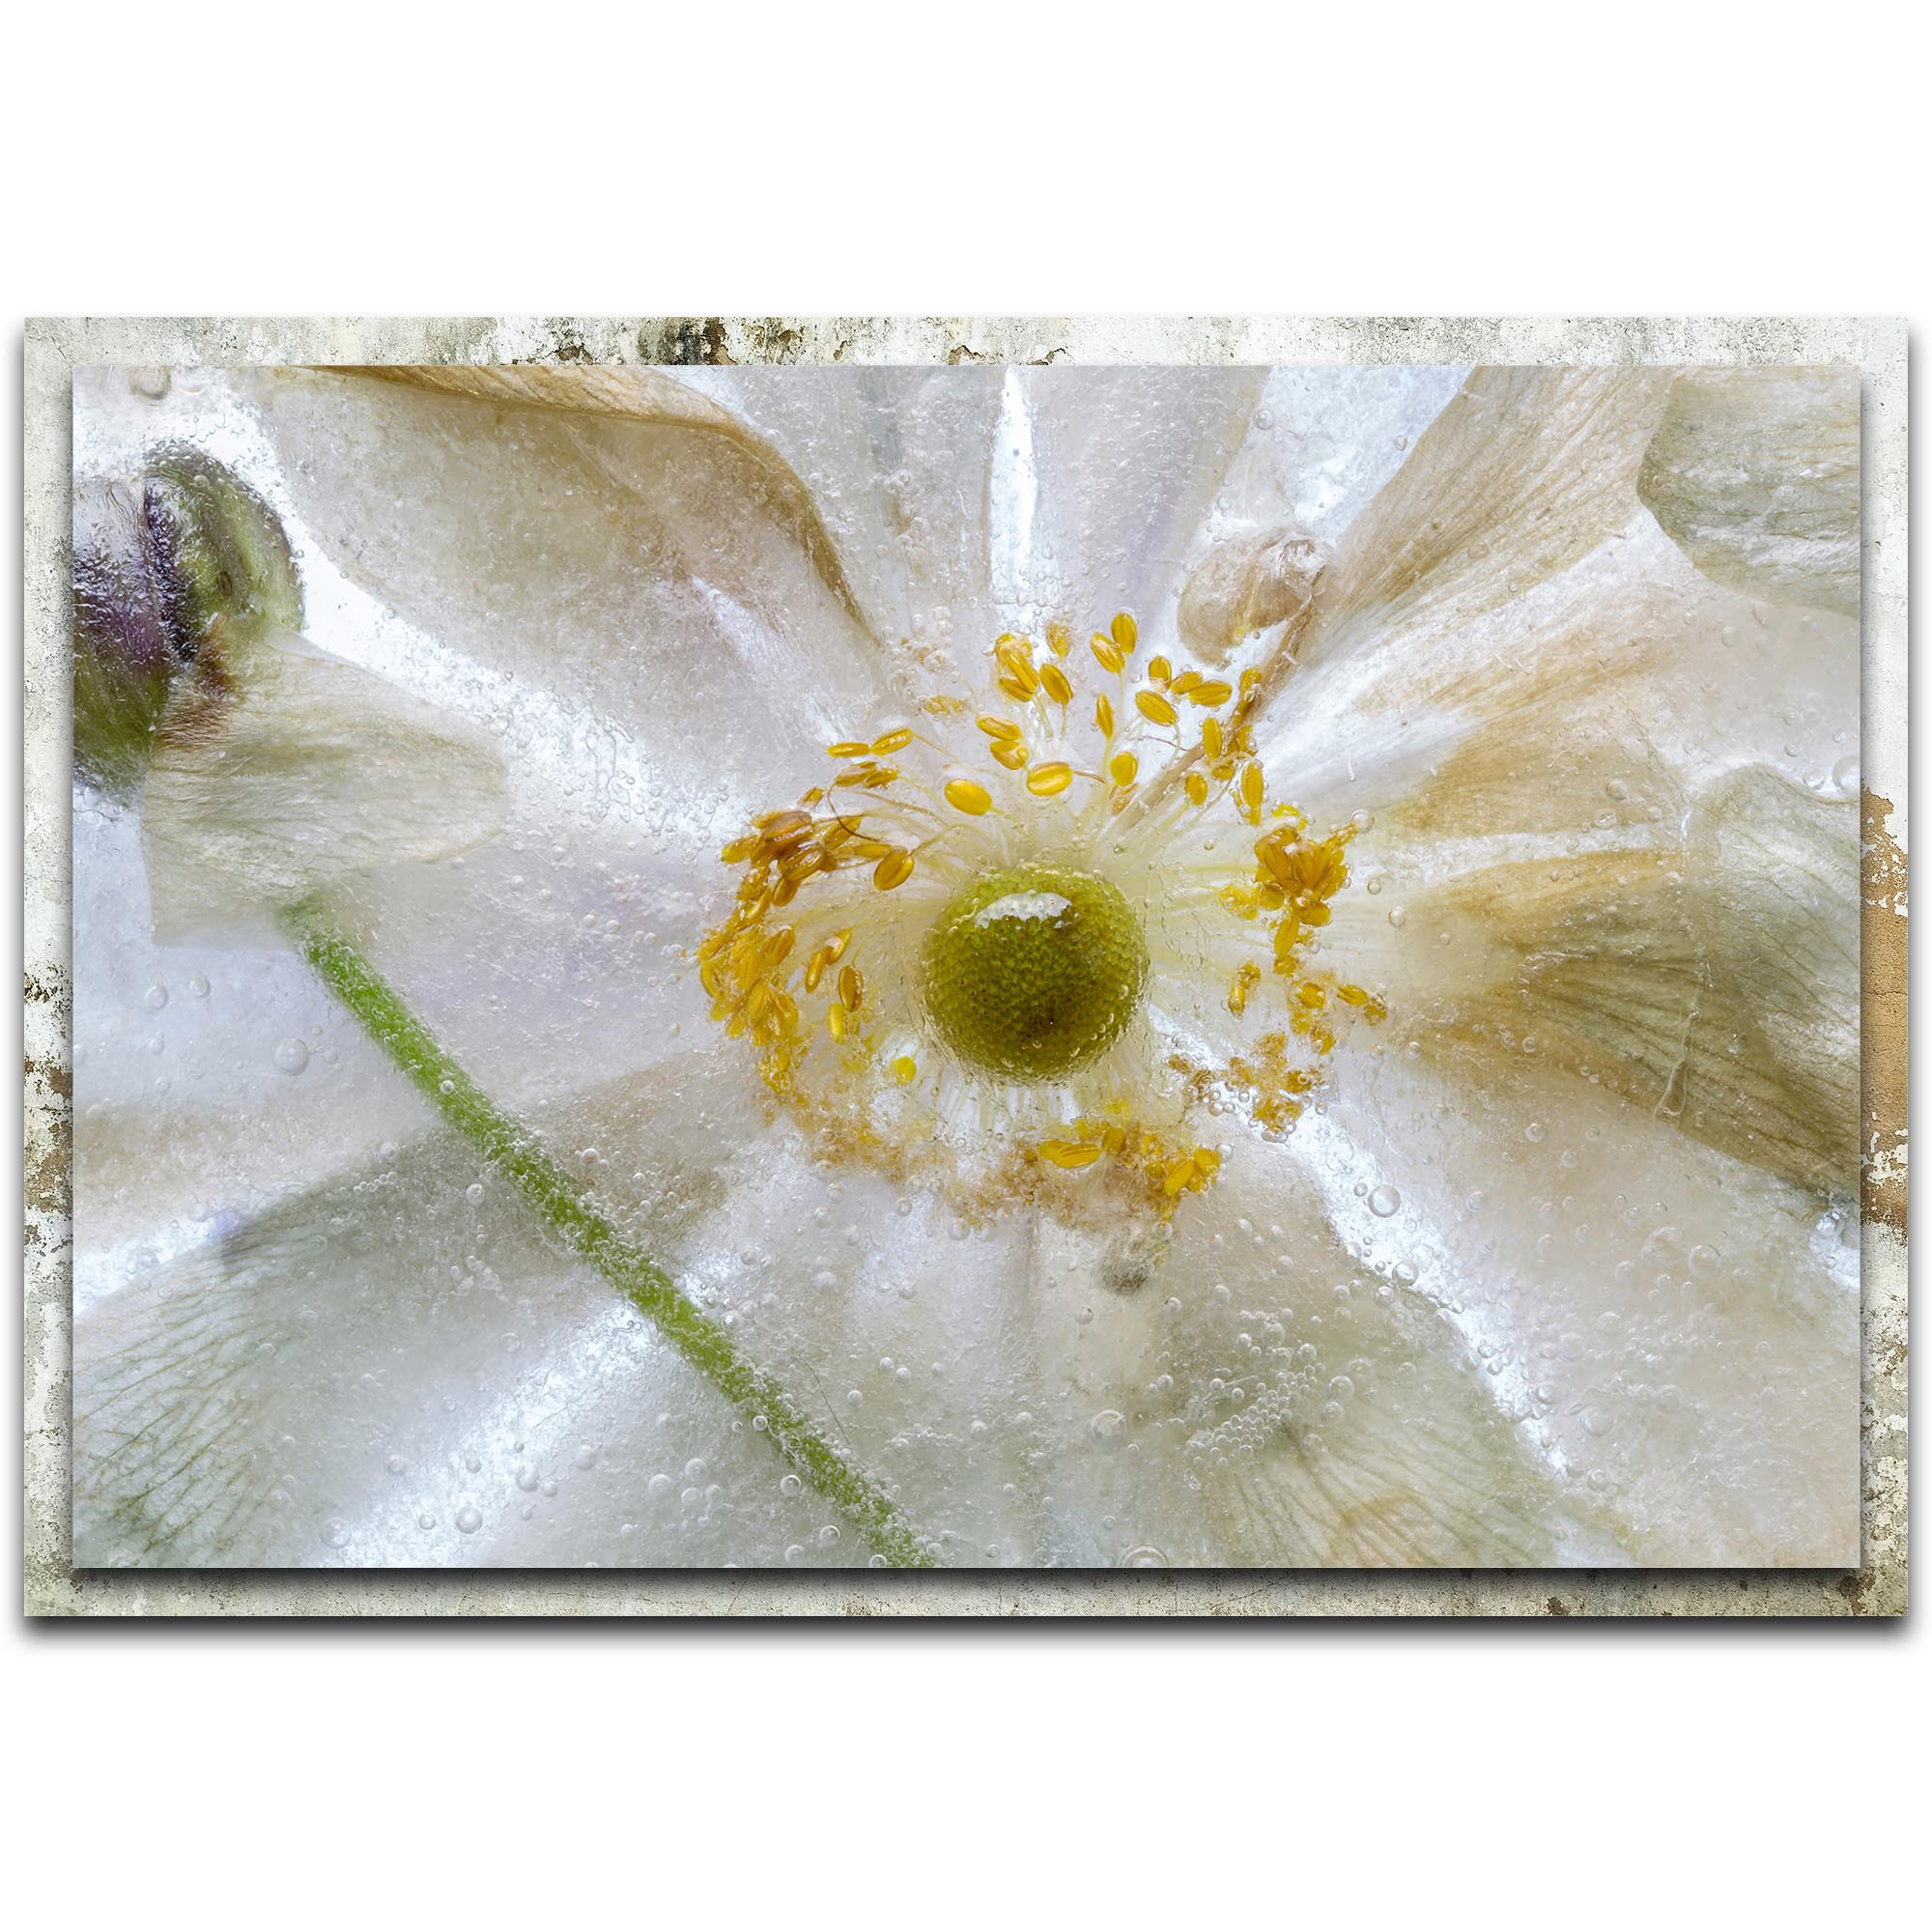 Mandy Disher 'Floral Freeze' 32in x 22in Modern Farmhouse Floral on Metal